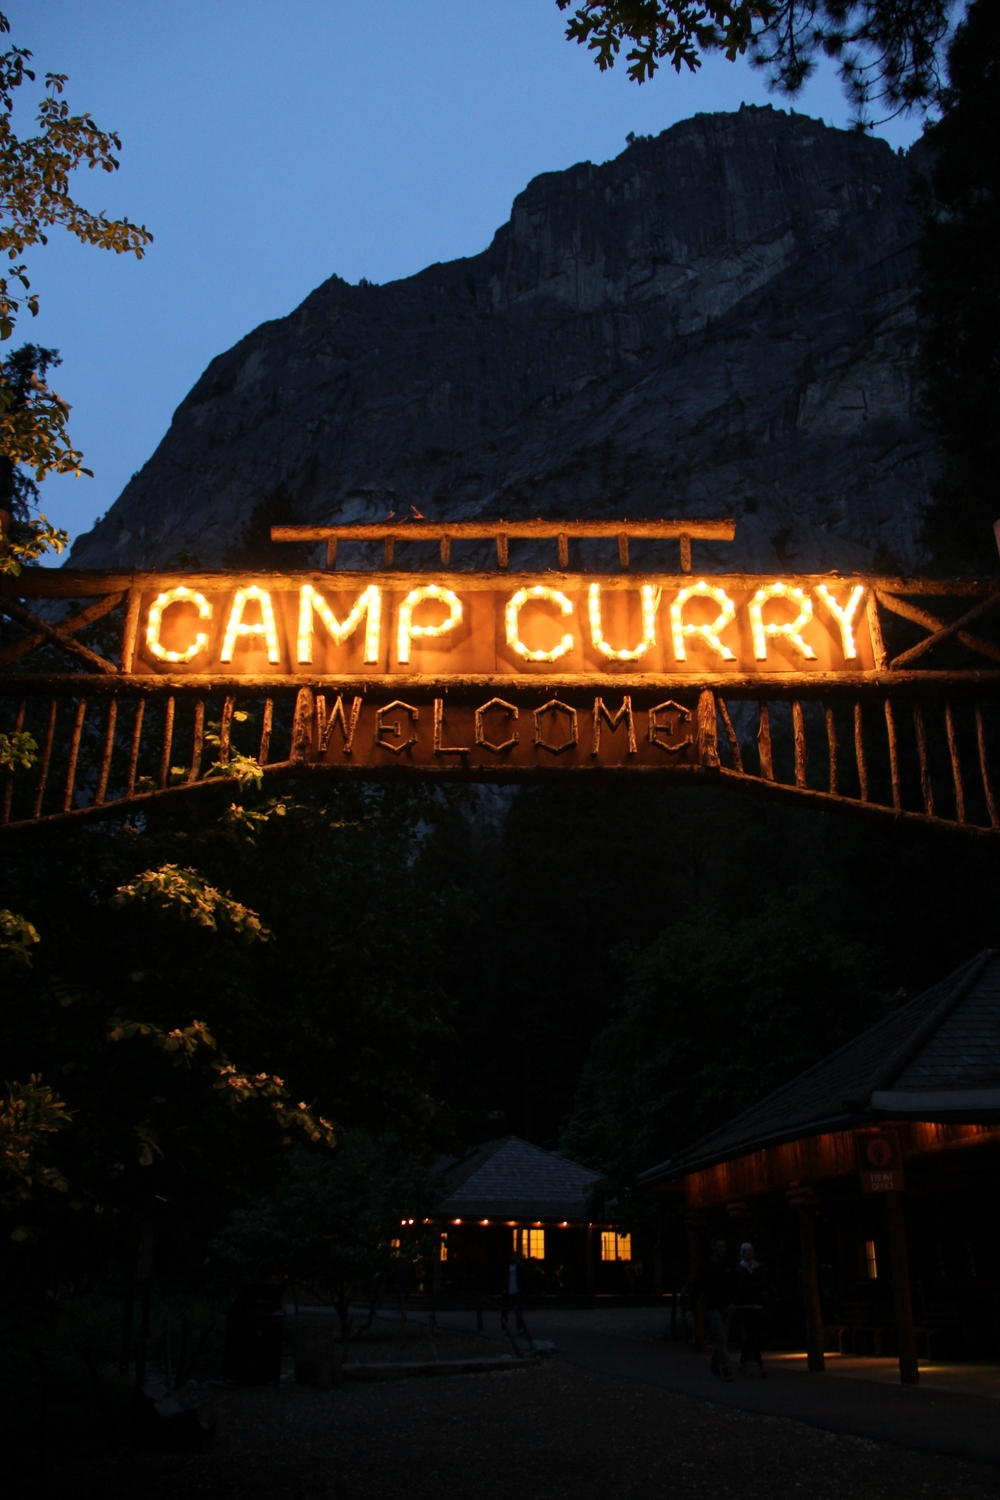 Camp Curry